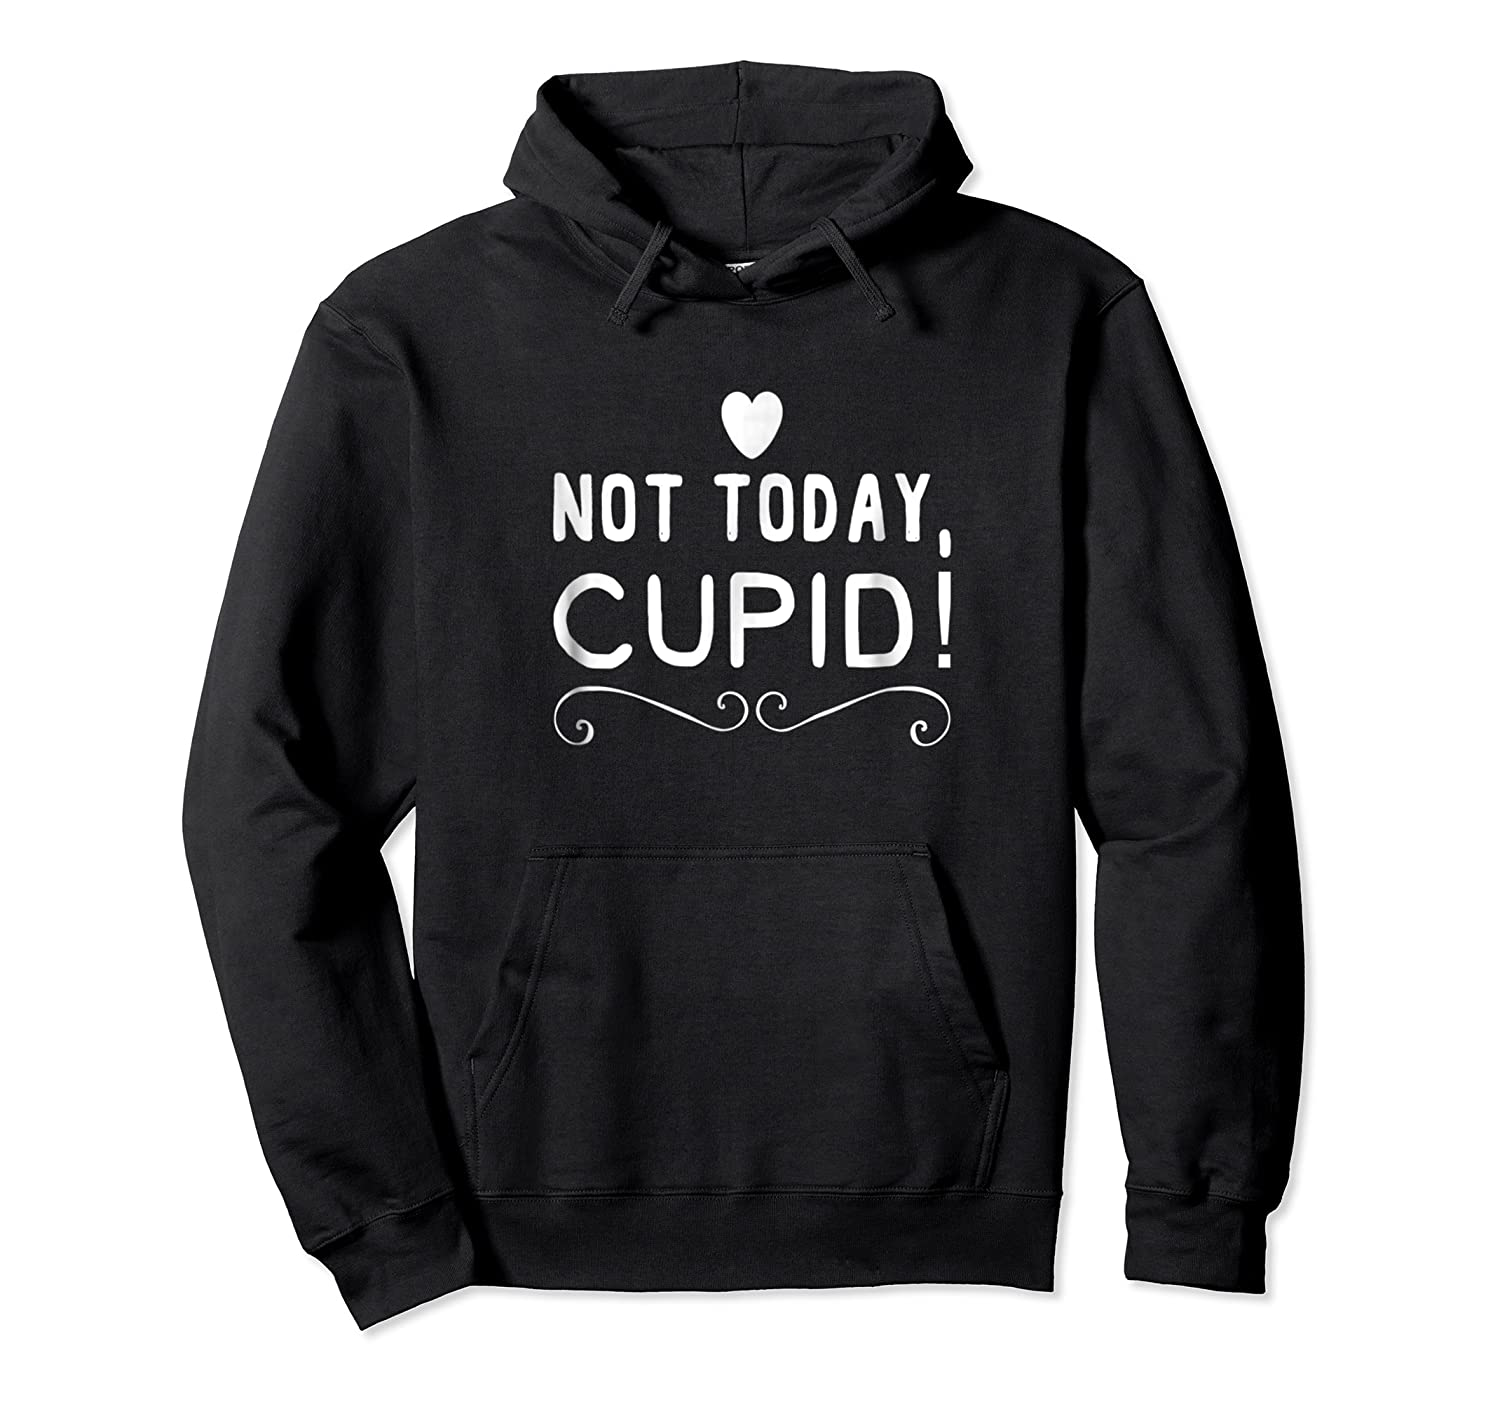 Not Today Cupid Funny Anti Love Tshirt Divorce Single Gift Unisex Pullover Hoodie